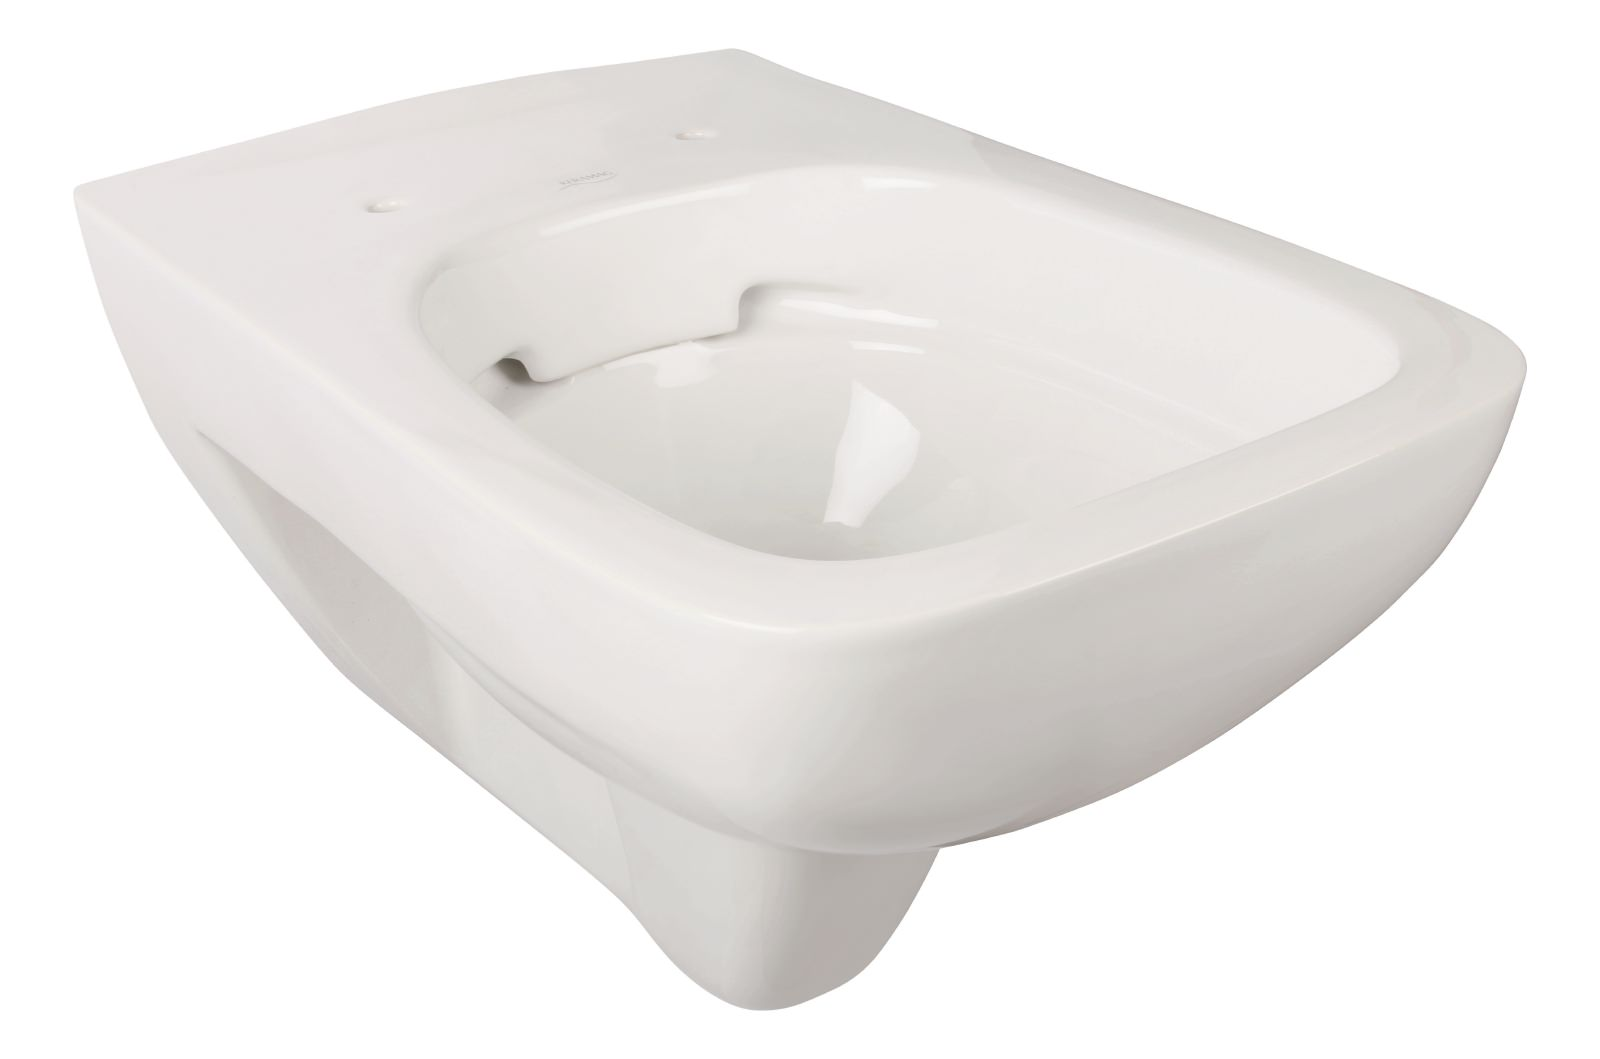 Keramag Rimfree Wc Renova Nr 1 Plan 202170000 Calmwaters